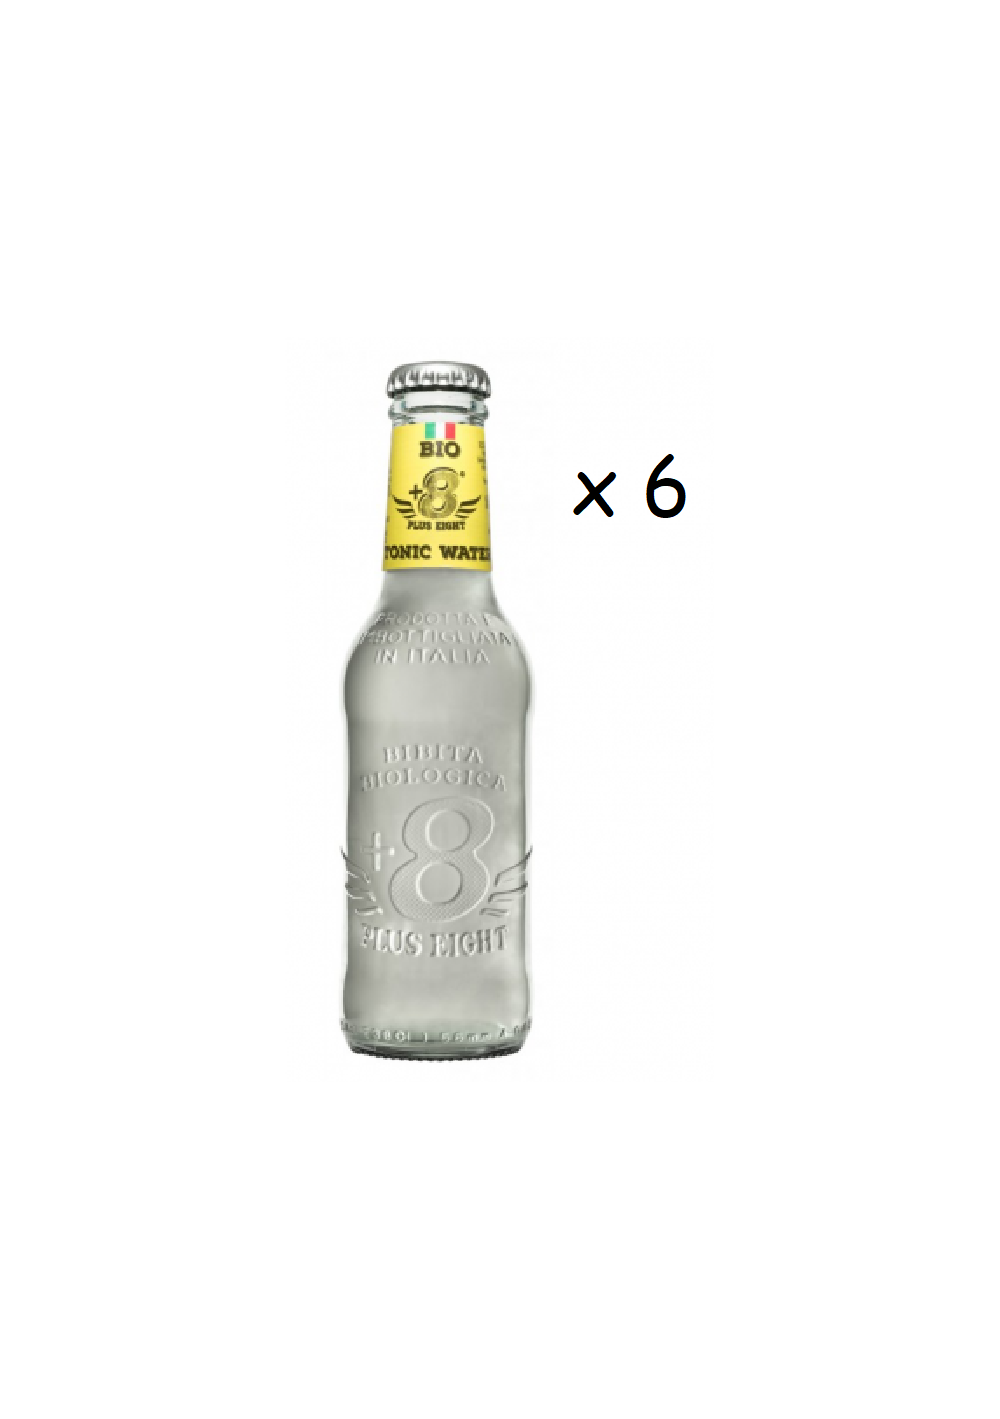 Tonics et Softs - Plus eight  tonic water Bio 6x20cl -